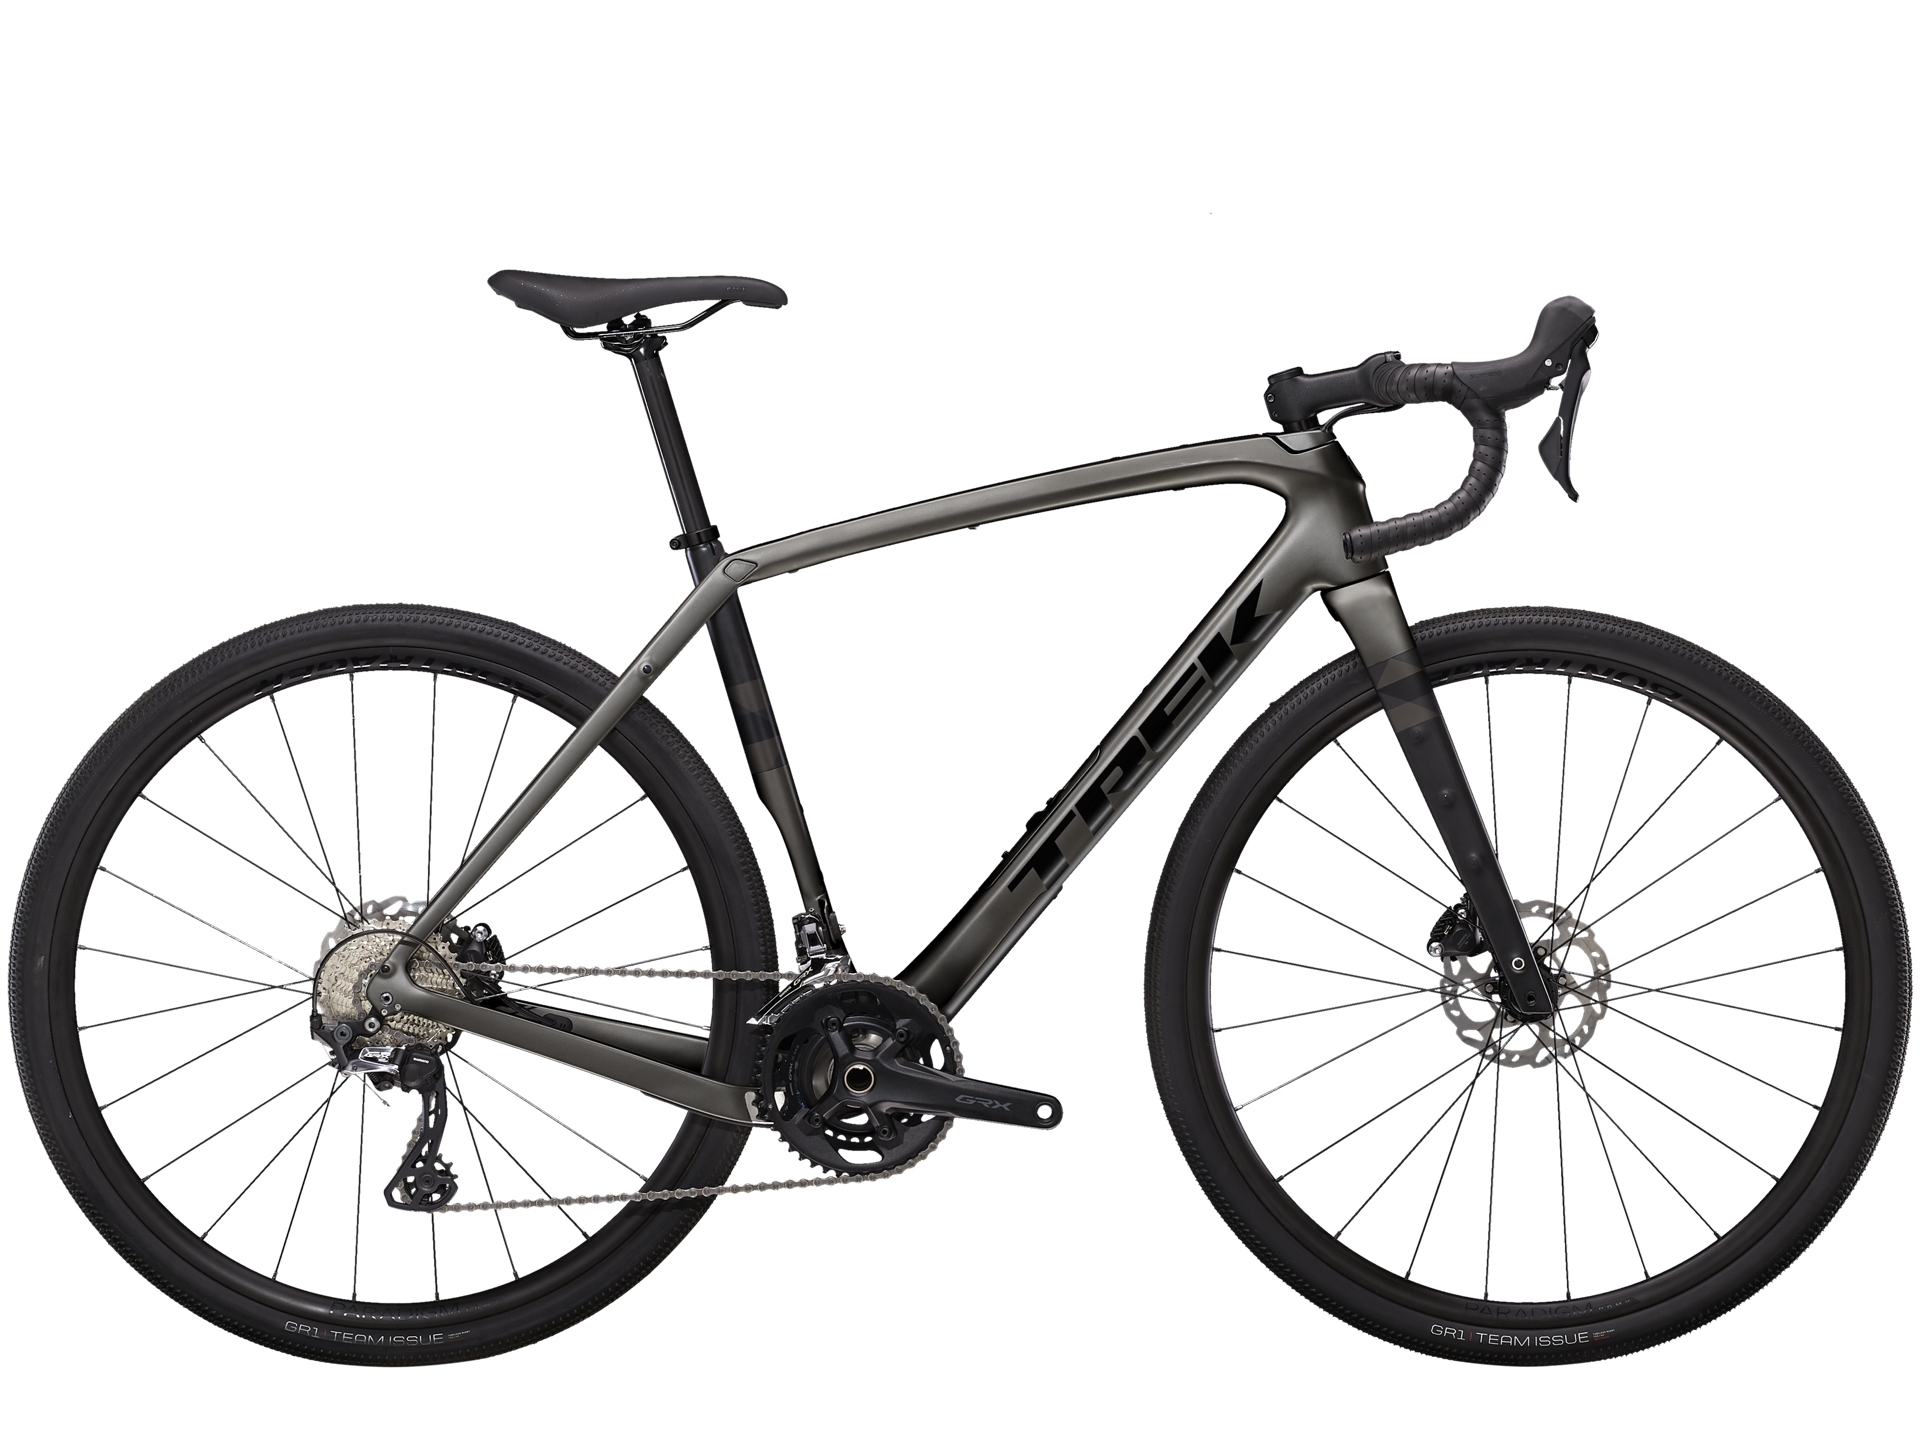 Trek introduced its revamped Checkpoint gravel bikes 4